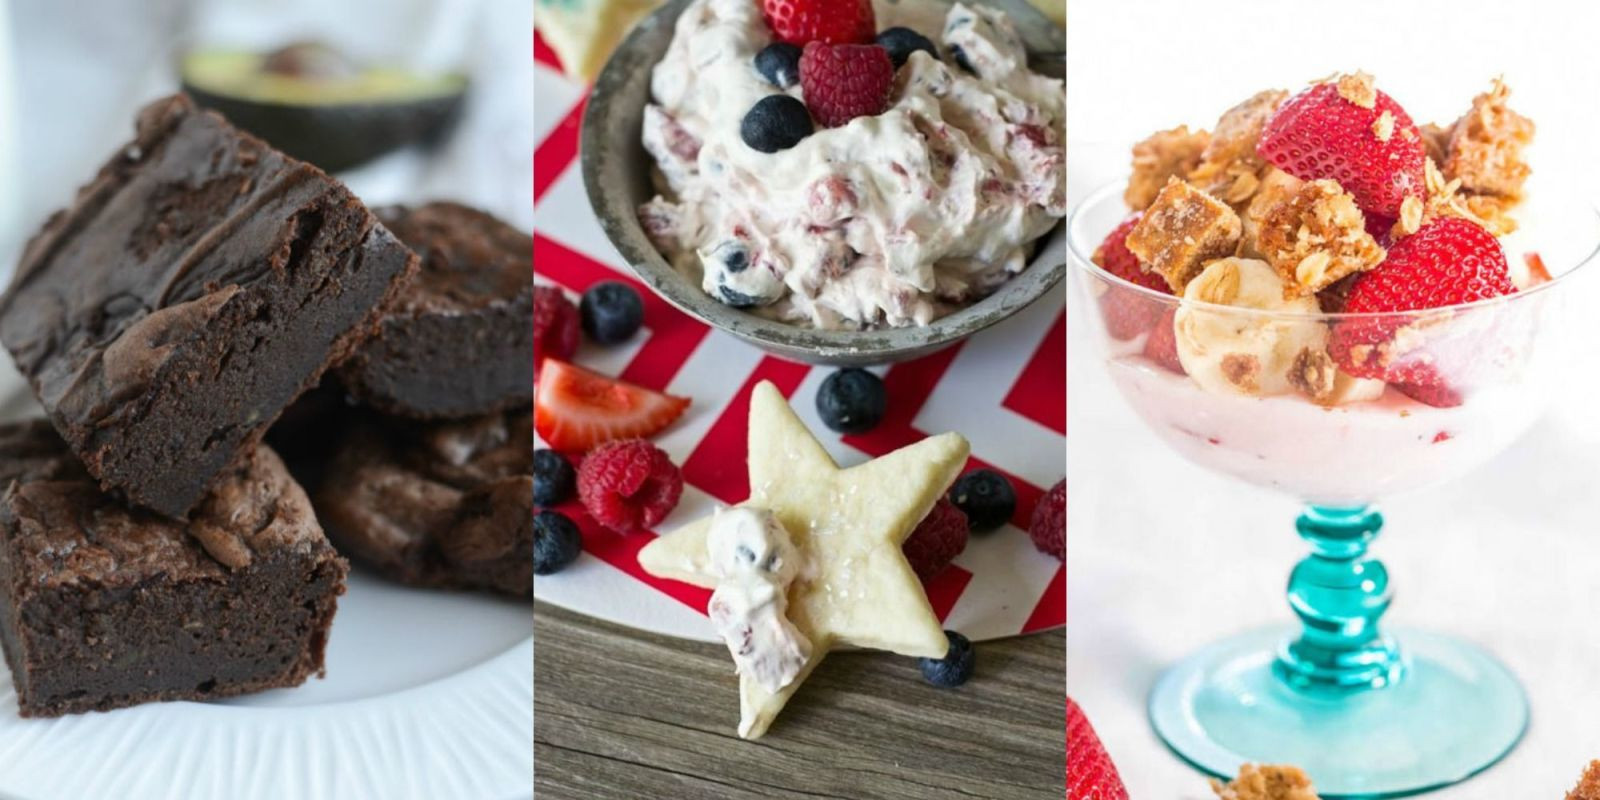 Healthy Dessert Ideas For Weight Loss  50 Healthy Desserts That Help You Lose Weight Fast